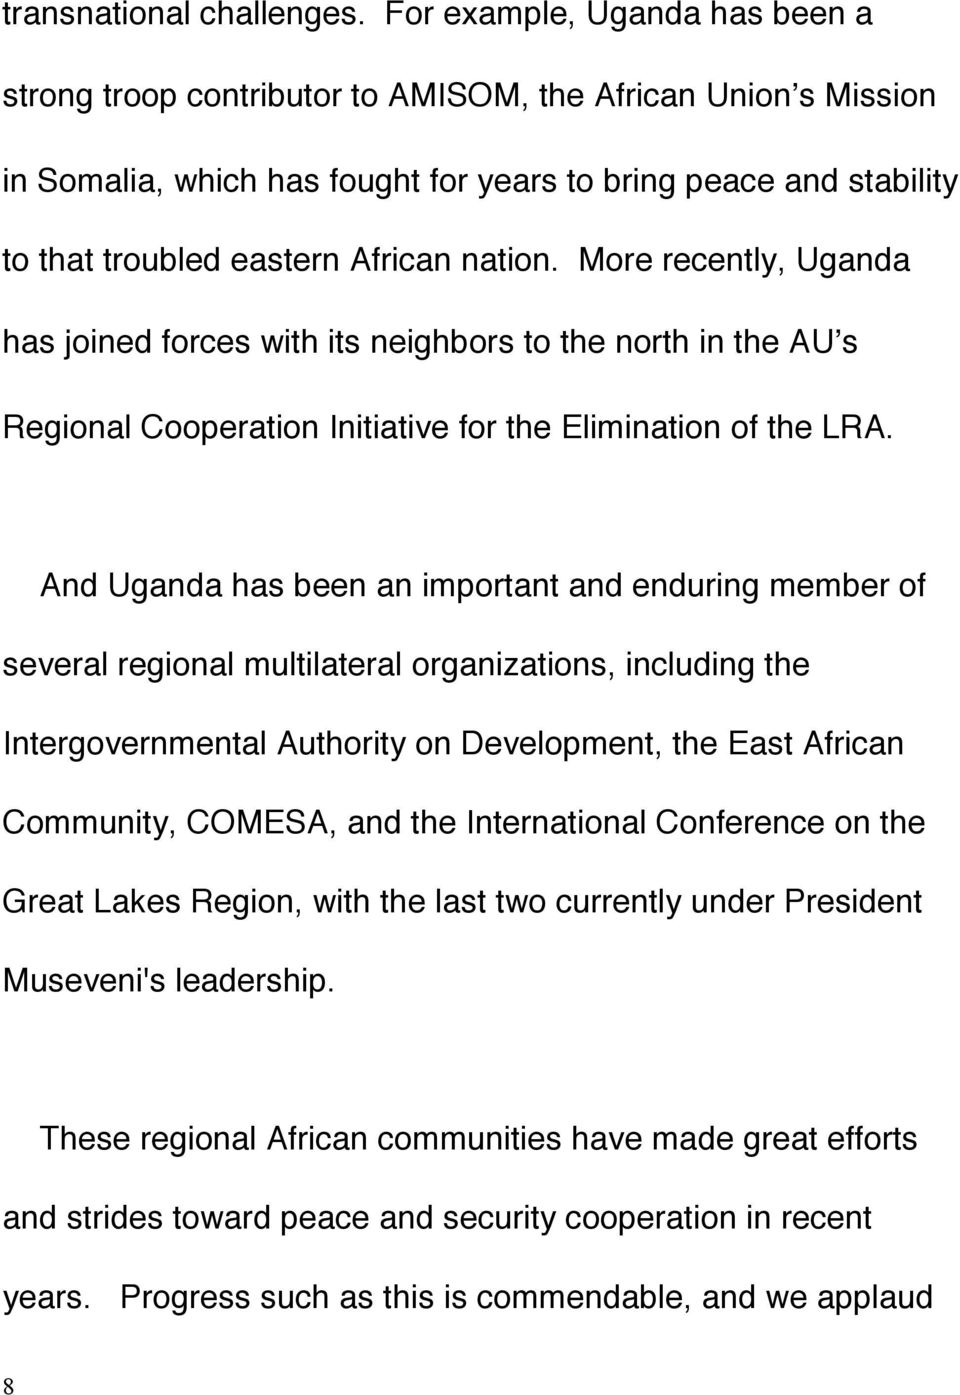 nation. More recently, Uganda has joined forces with its neighbors to the north in the AU s Regional Cooperation Initiative for the Elimination of the LRA.